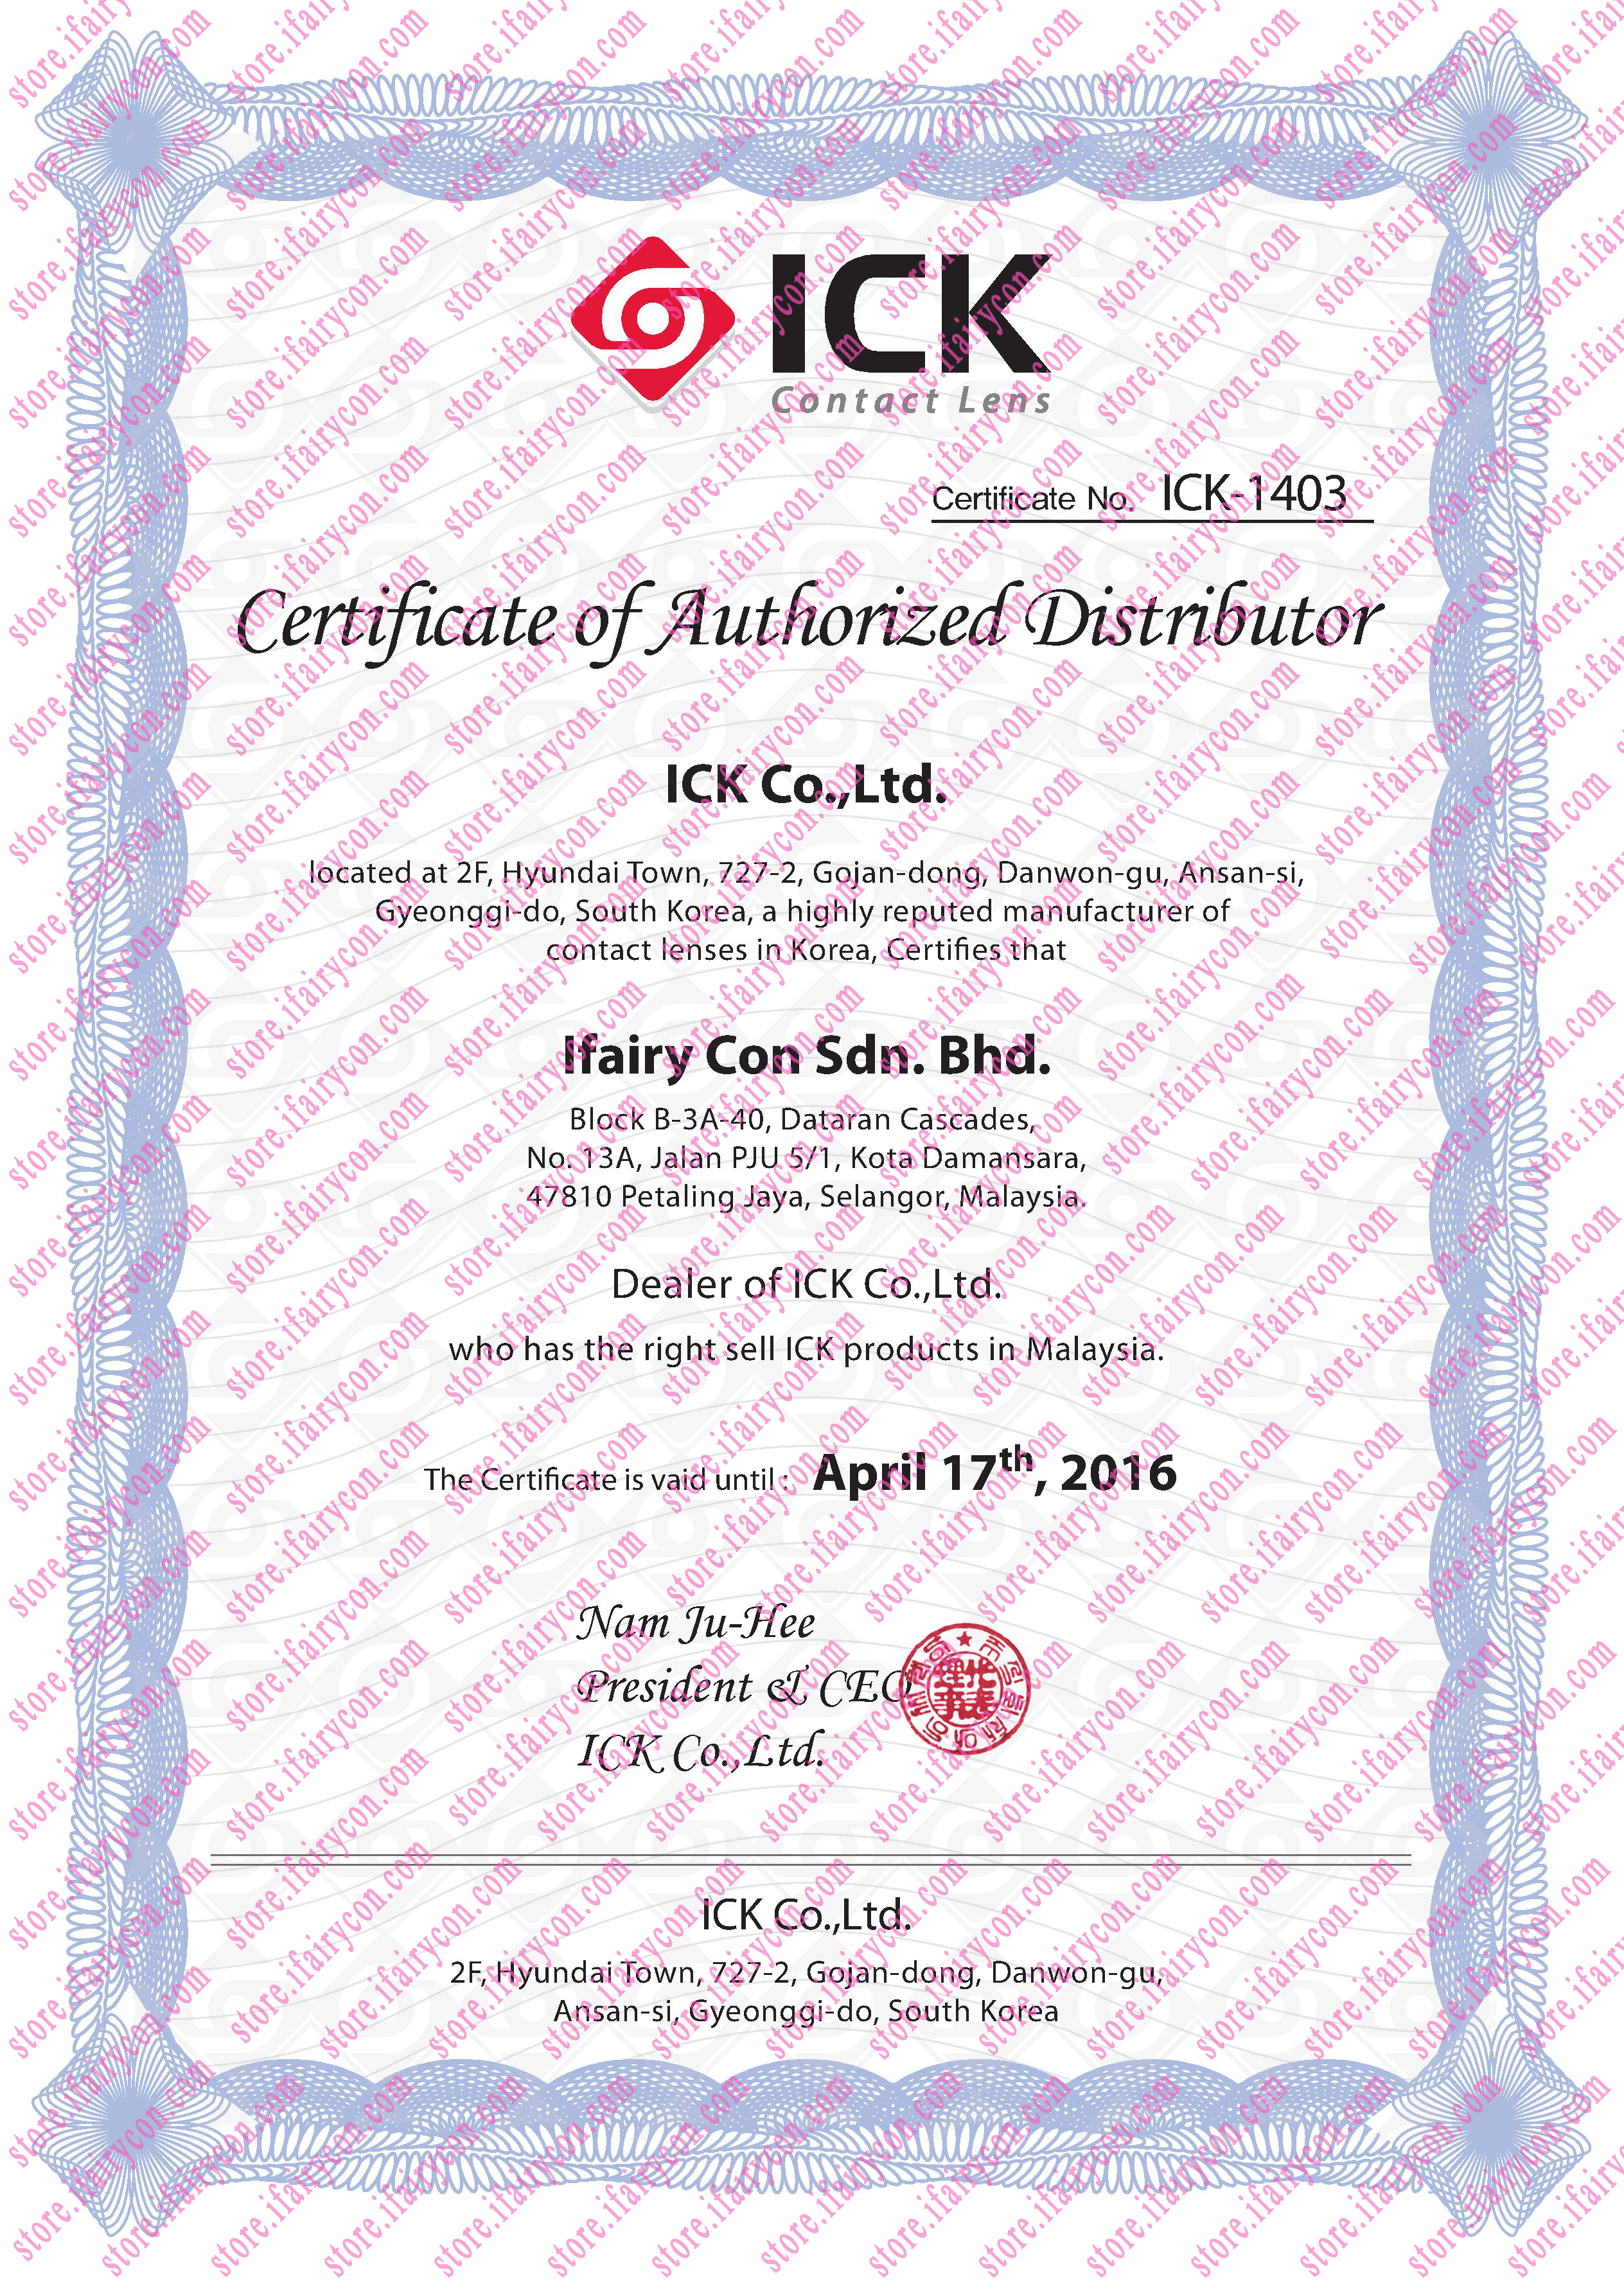 ick-certificate-done.png